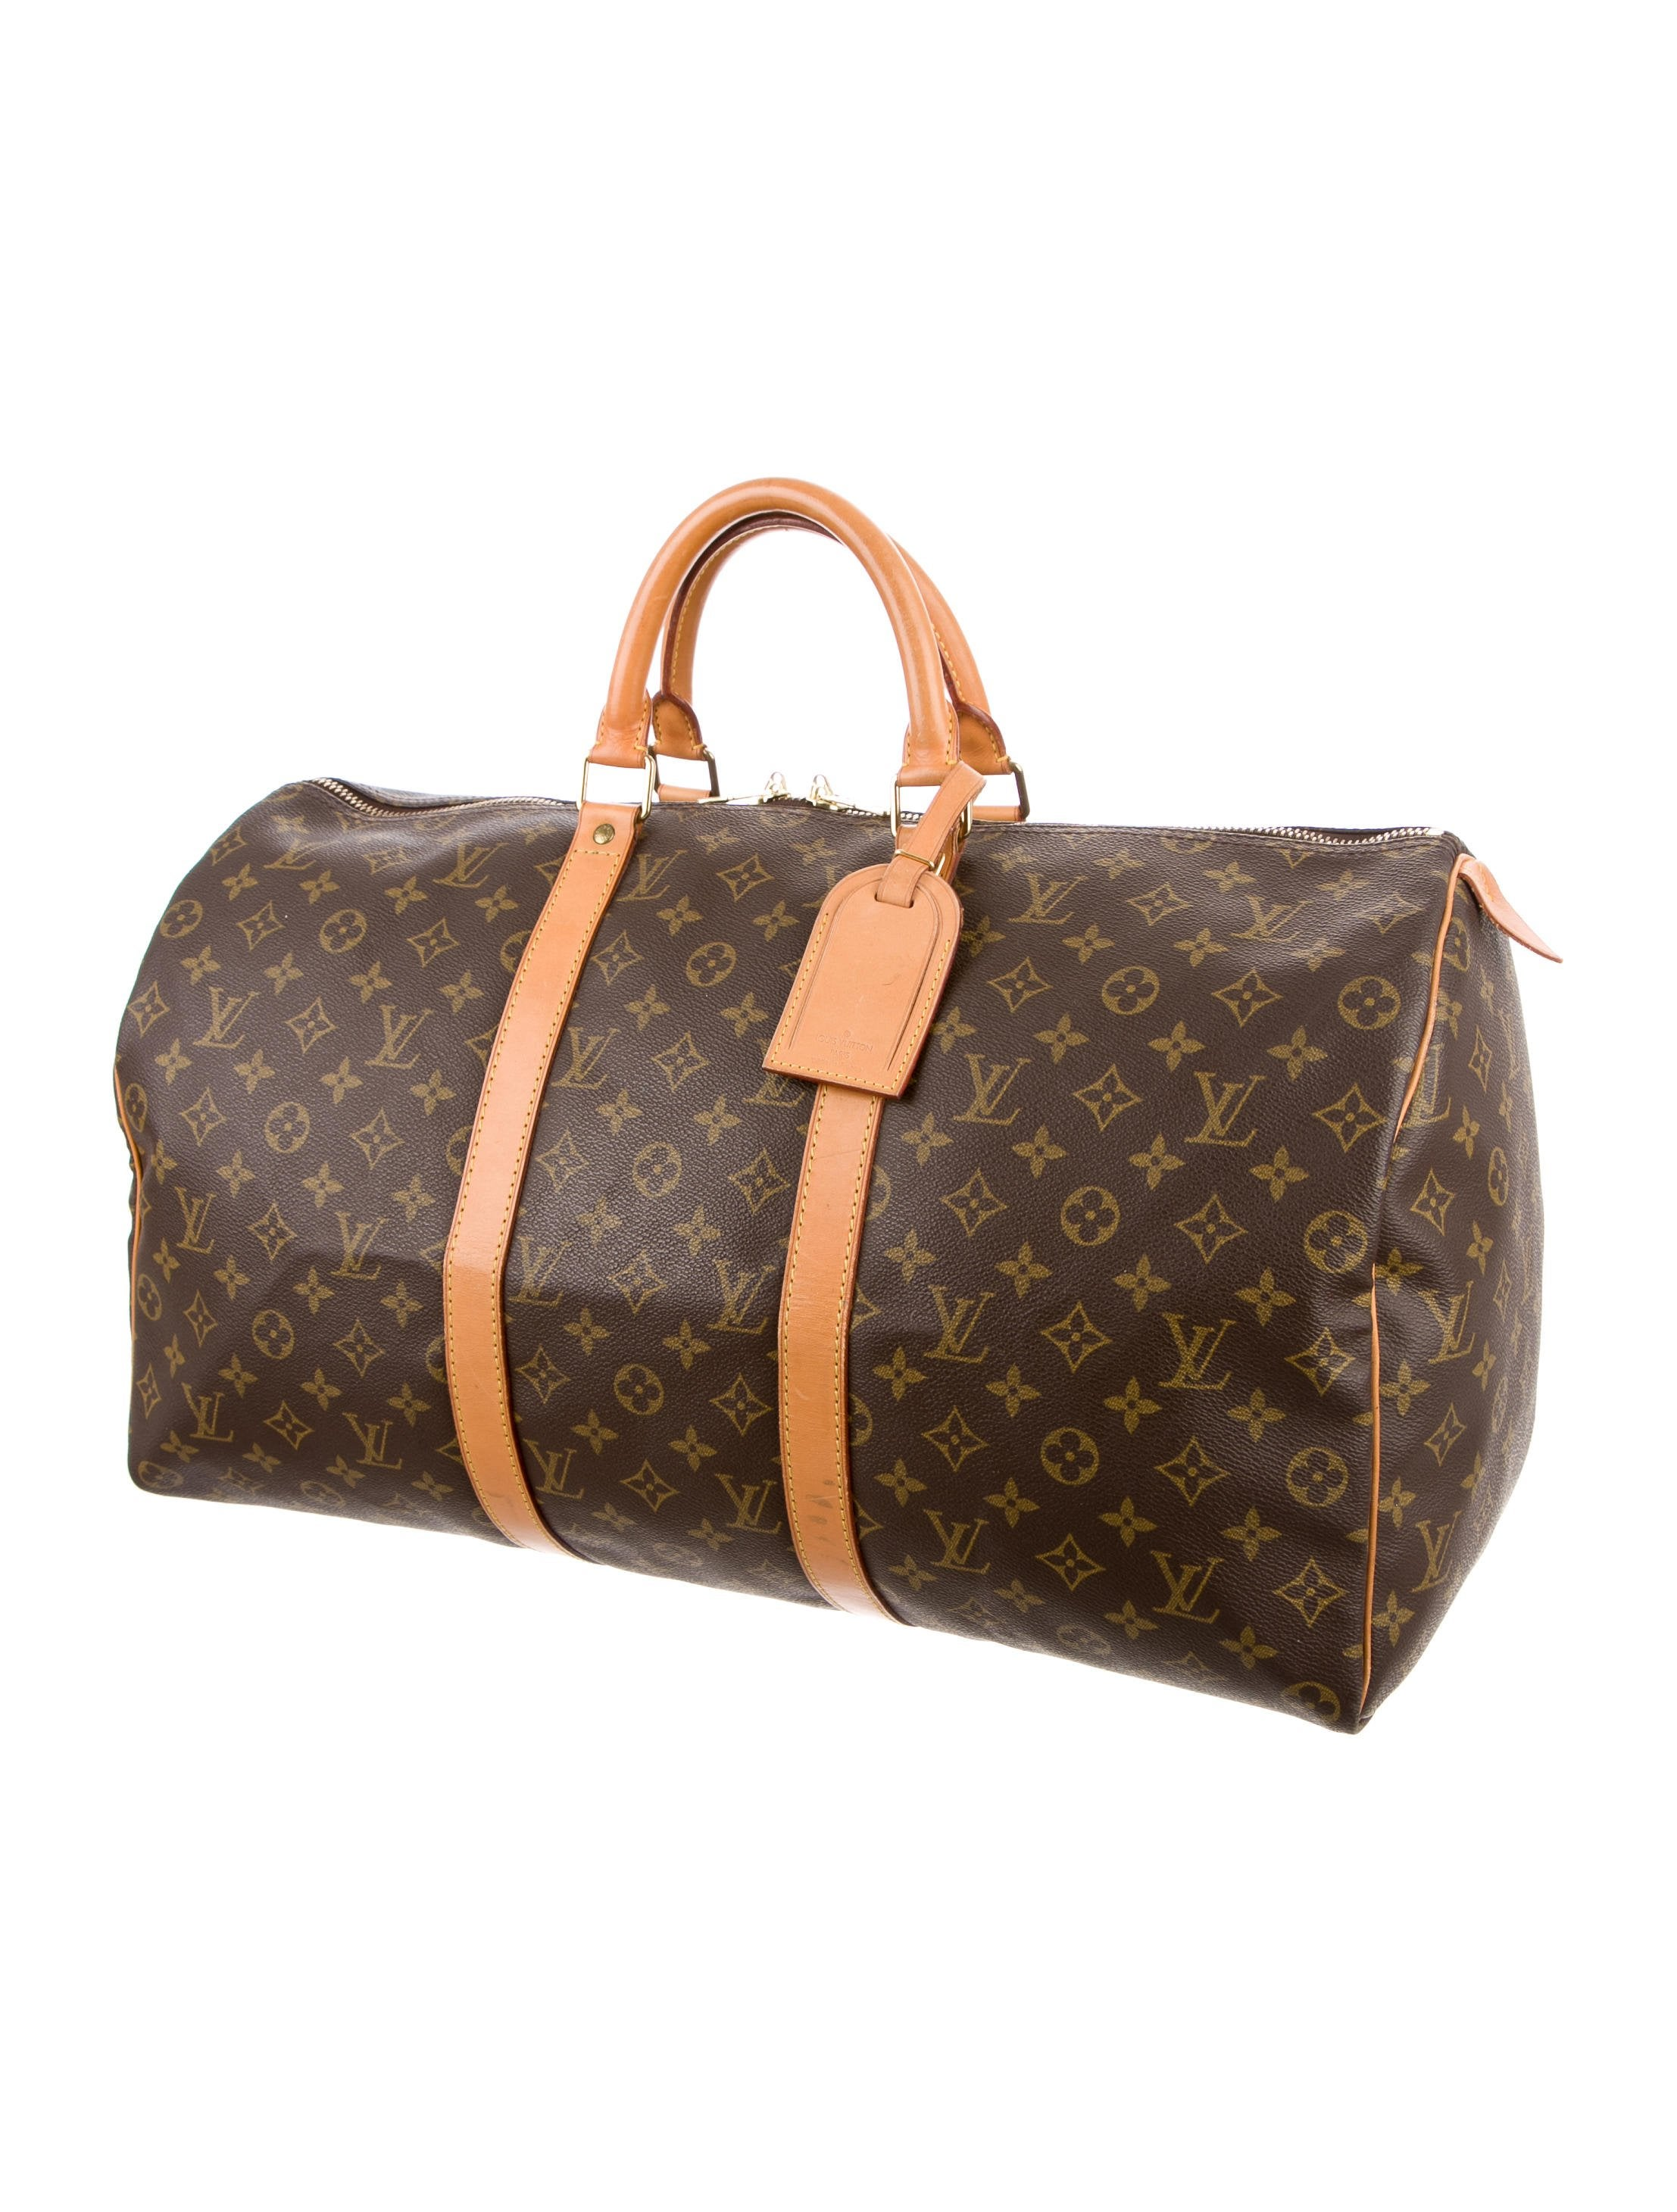 louis vuitton monogram keepall 50 bags lou111321 the. Black Bedroom Furniture Sets. Home Design Ideas